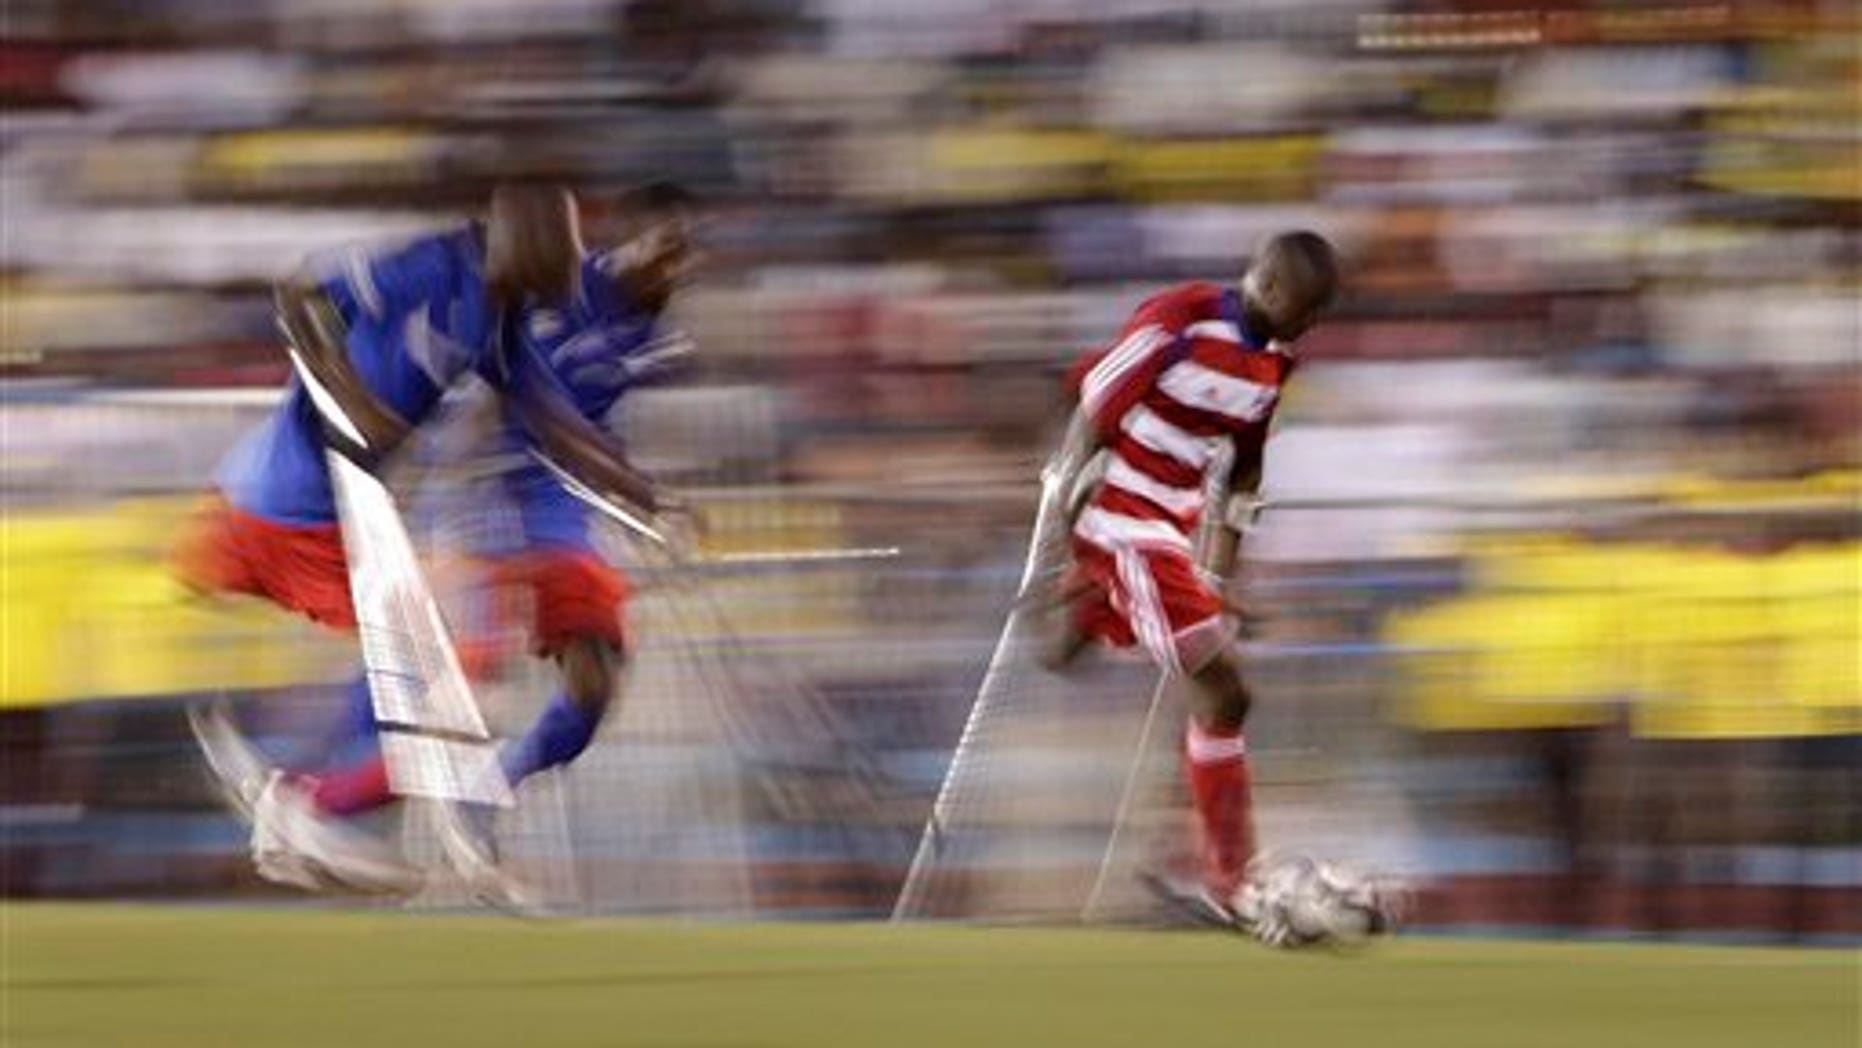 Jan. 10, 2011: A player belonging to Haiti's unofficial national amputee soccer team, right, controls the ball as two players from the local Zaryen team attempt to defend in a friendly match at the national stadium in Port-au-Prince, Haiti. The game is one of many events planned to mark the one-year anniversary of the Jan. 12th magnitude-7.0 quake that killed more than 220,000 people and left millions homeless.  Many of the players from both teams lost their limbs in the earthquake. (AP)